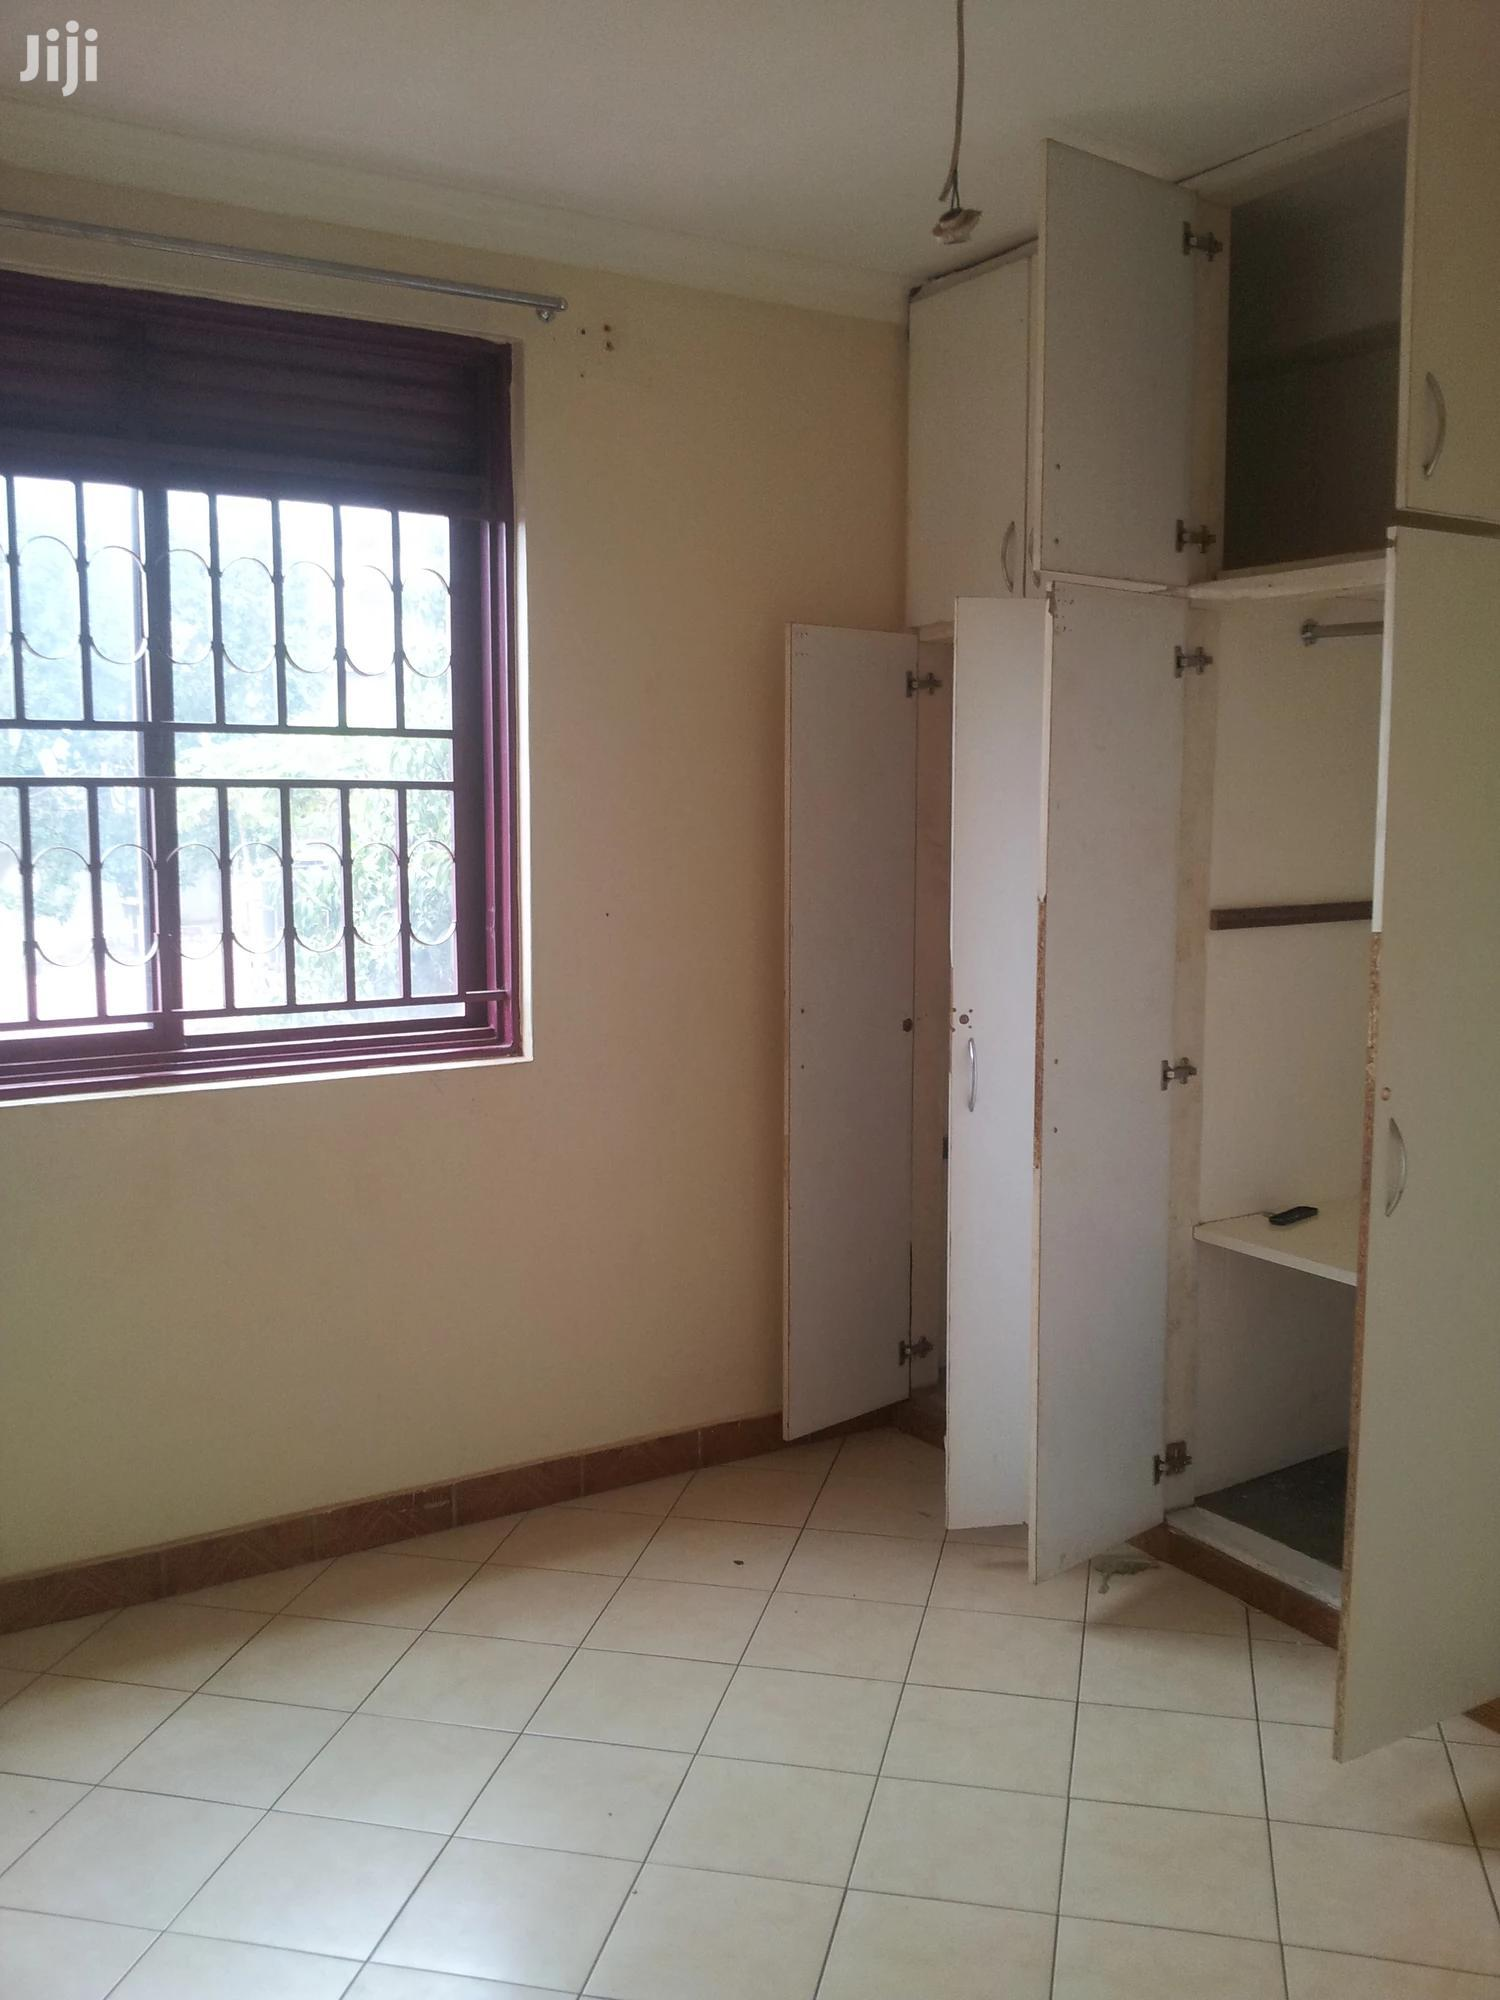 House for Rent at Ntinda | Houses & Apartments For Rent for sale in Kampala, Central Region, Uganda